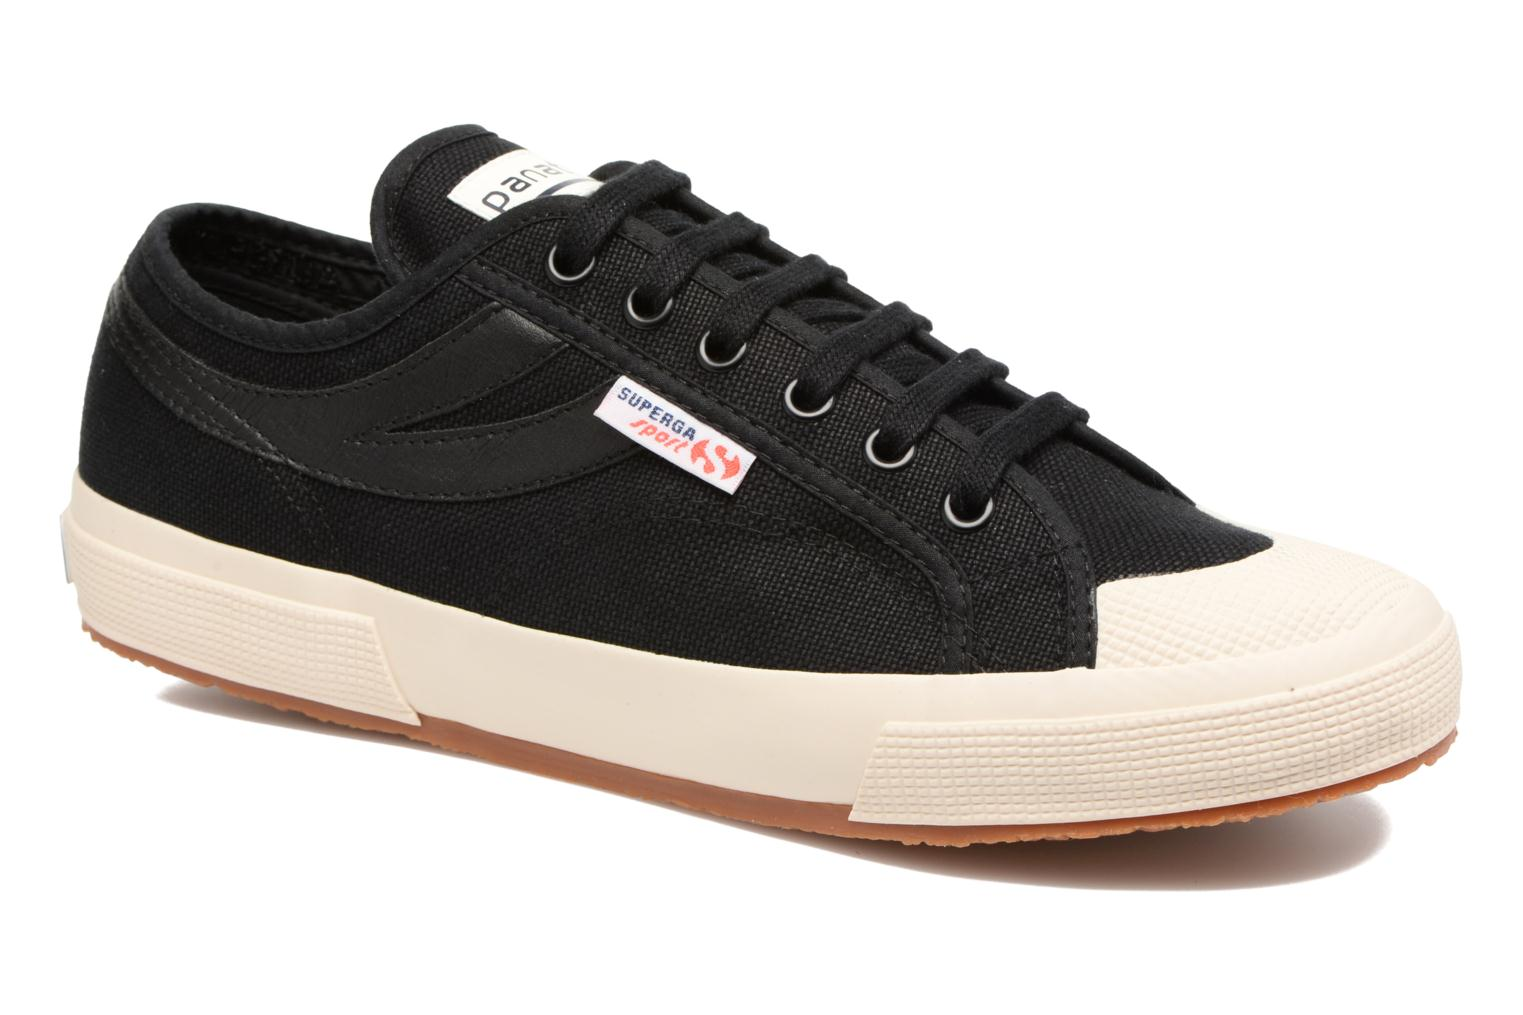 Marques Chaussure homme Superga homme 2750 Cotu M Full Black